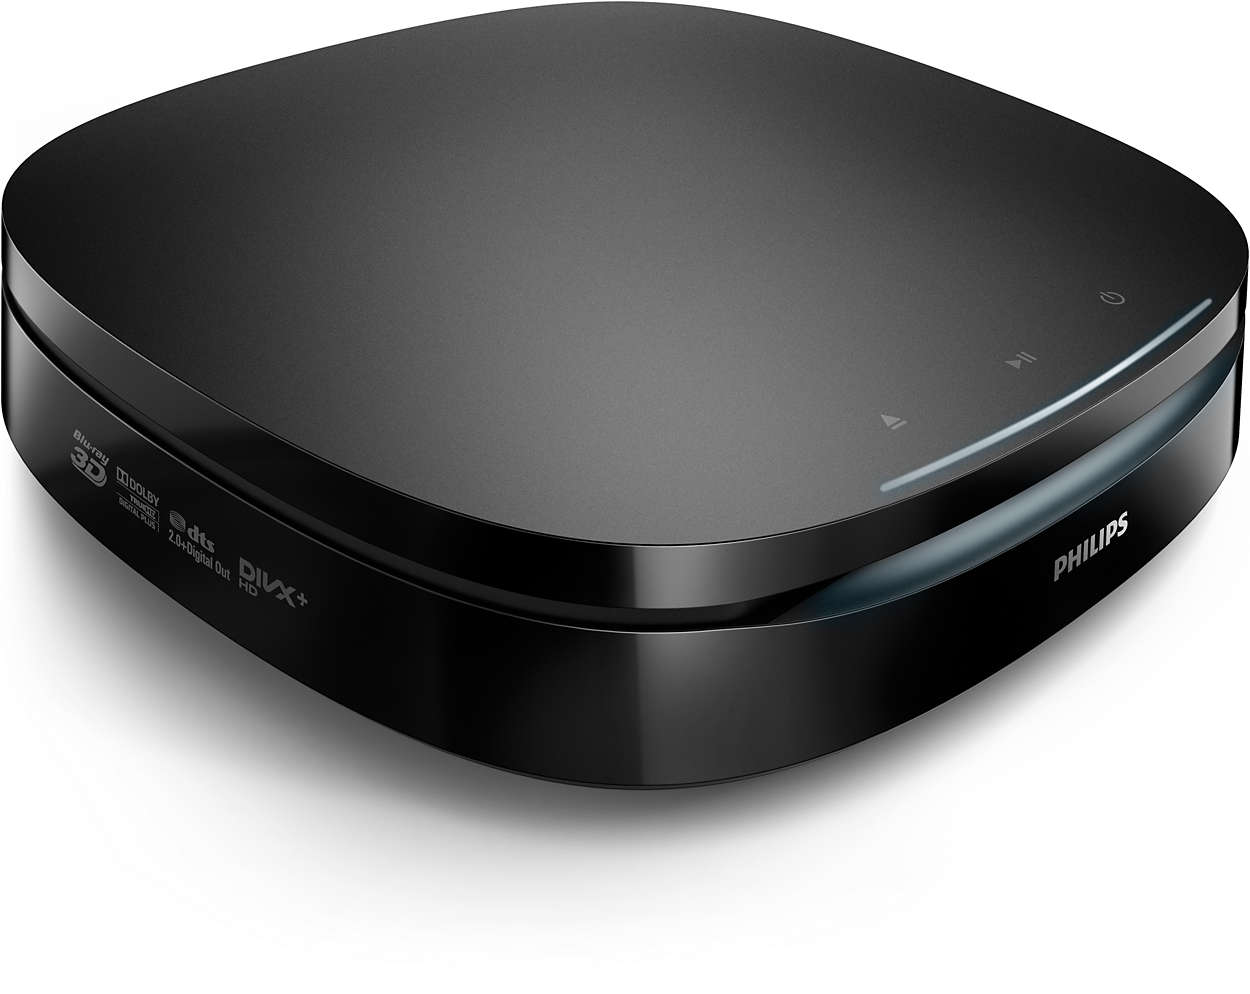 Blu Ray Disc Dvd Player Bdp3290b 98 Philips Working Of Digital Versatile All Round